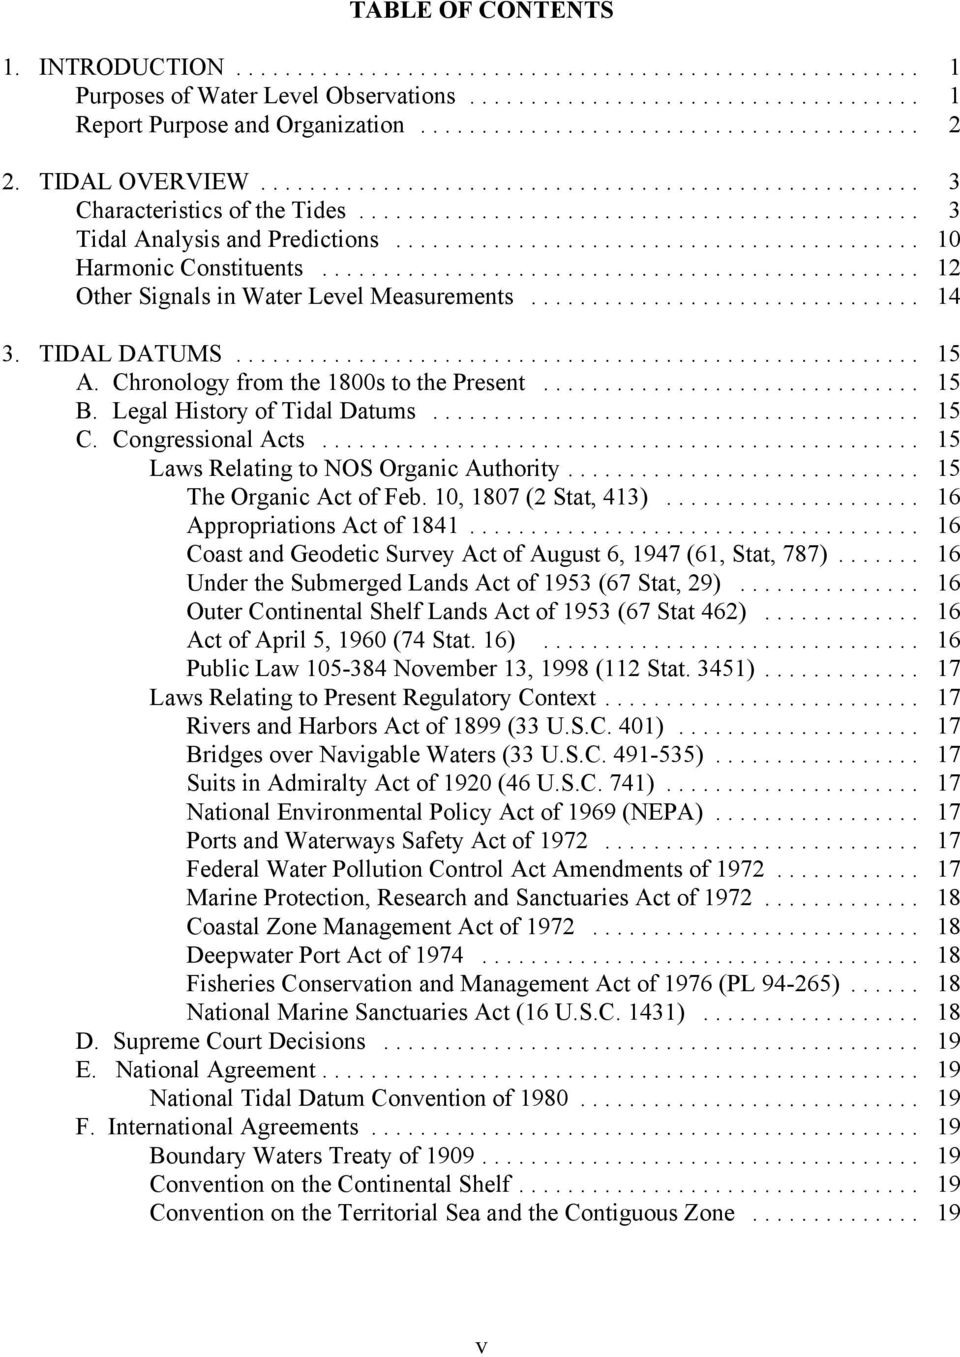 Legal History of Tidal Datums... 15 C. Congressional Acts... 15 Laws Relating to NOS Organic Authority... 15 The Organic Act of Feb. 10, 1807 (2 Stat, 413)... 16 Appropriations Act of 1841.